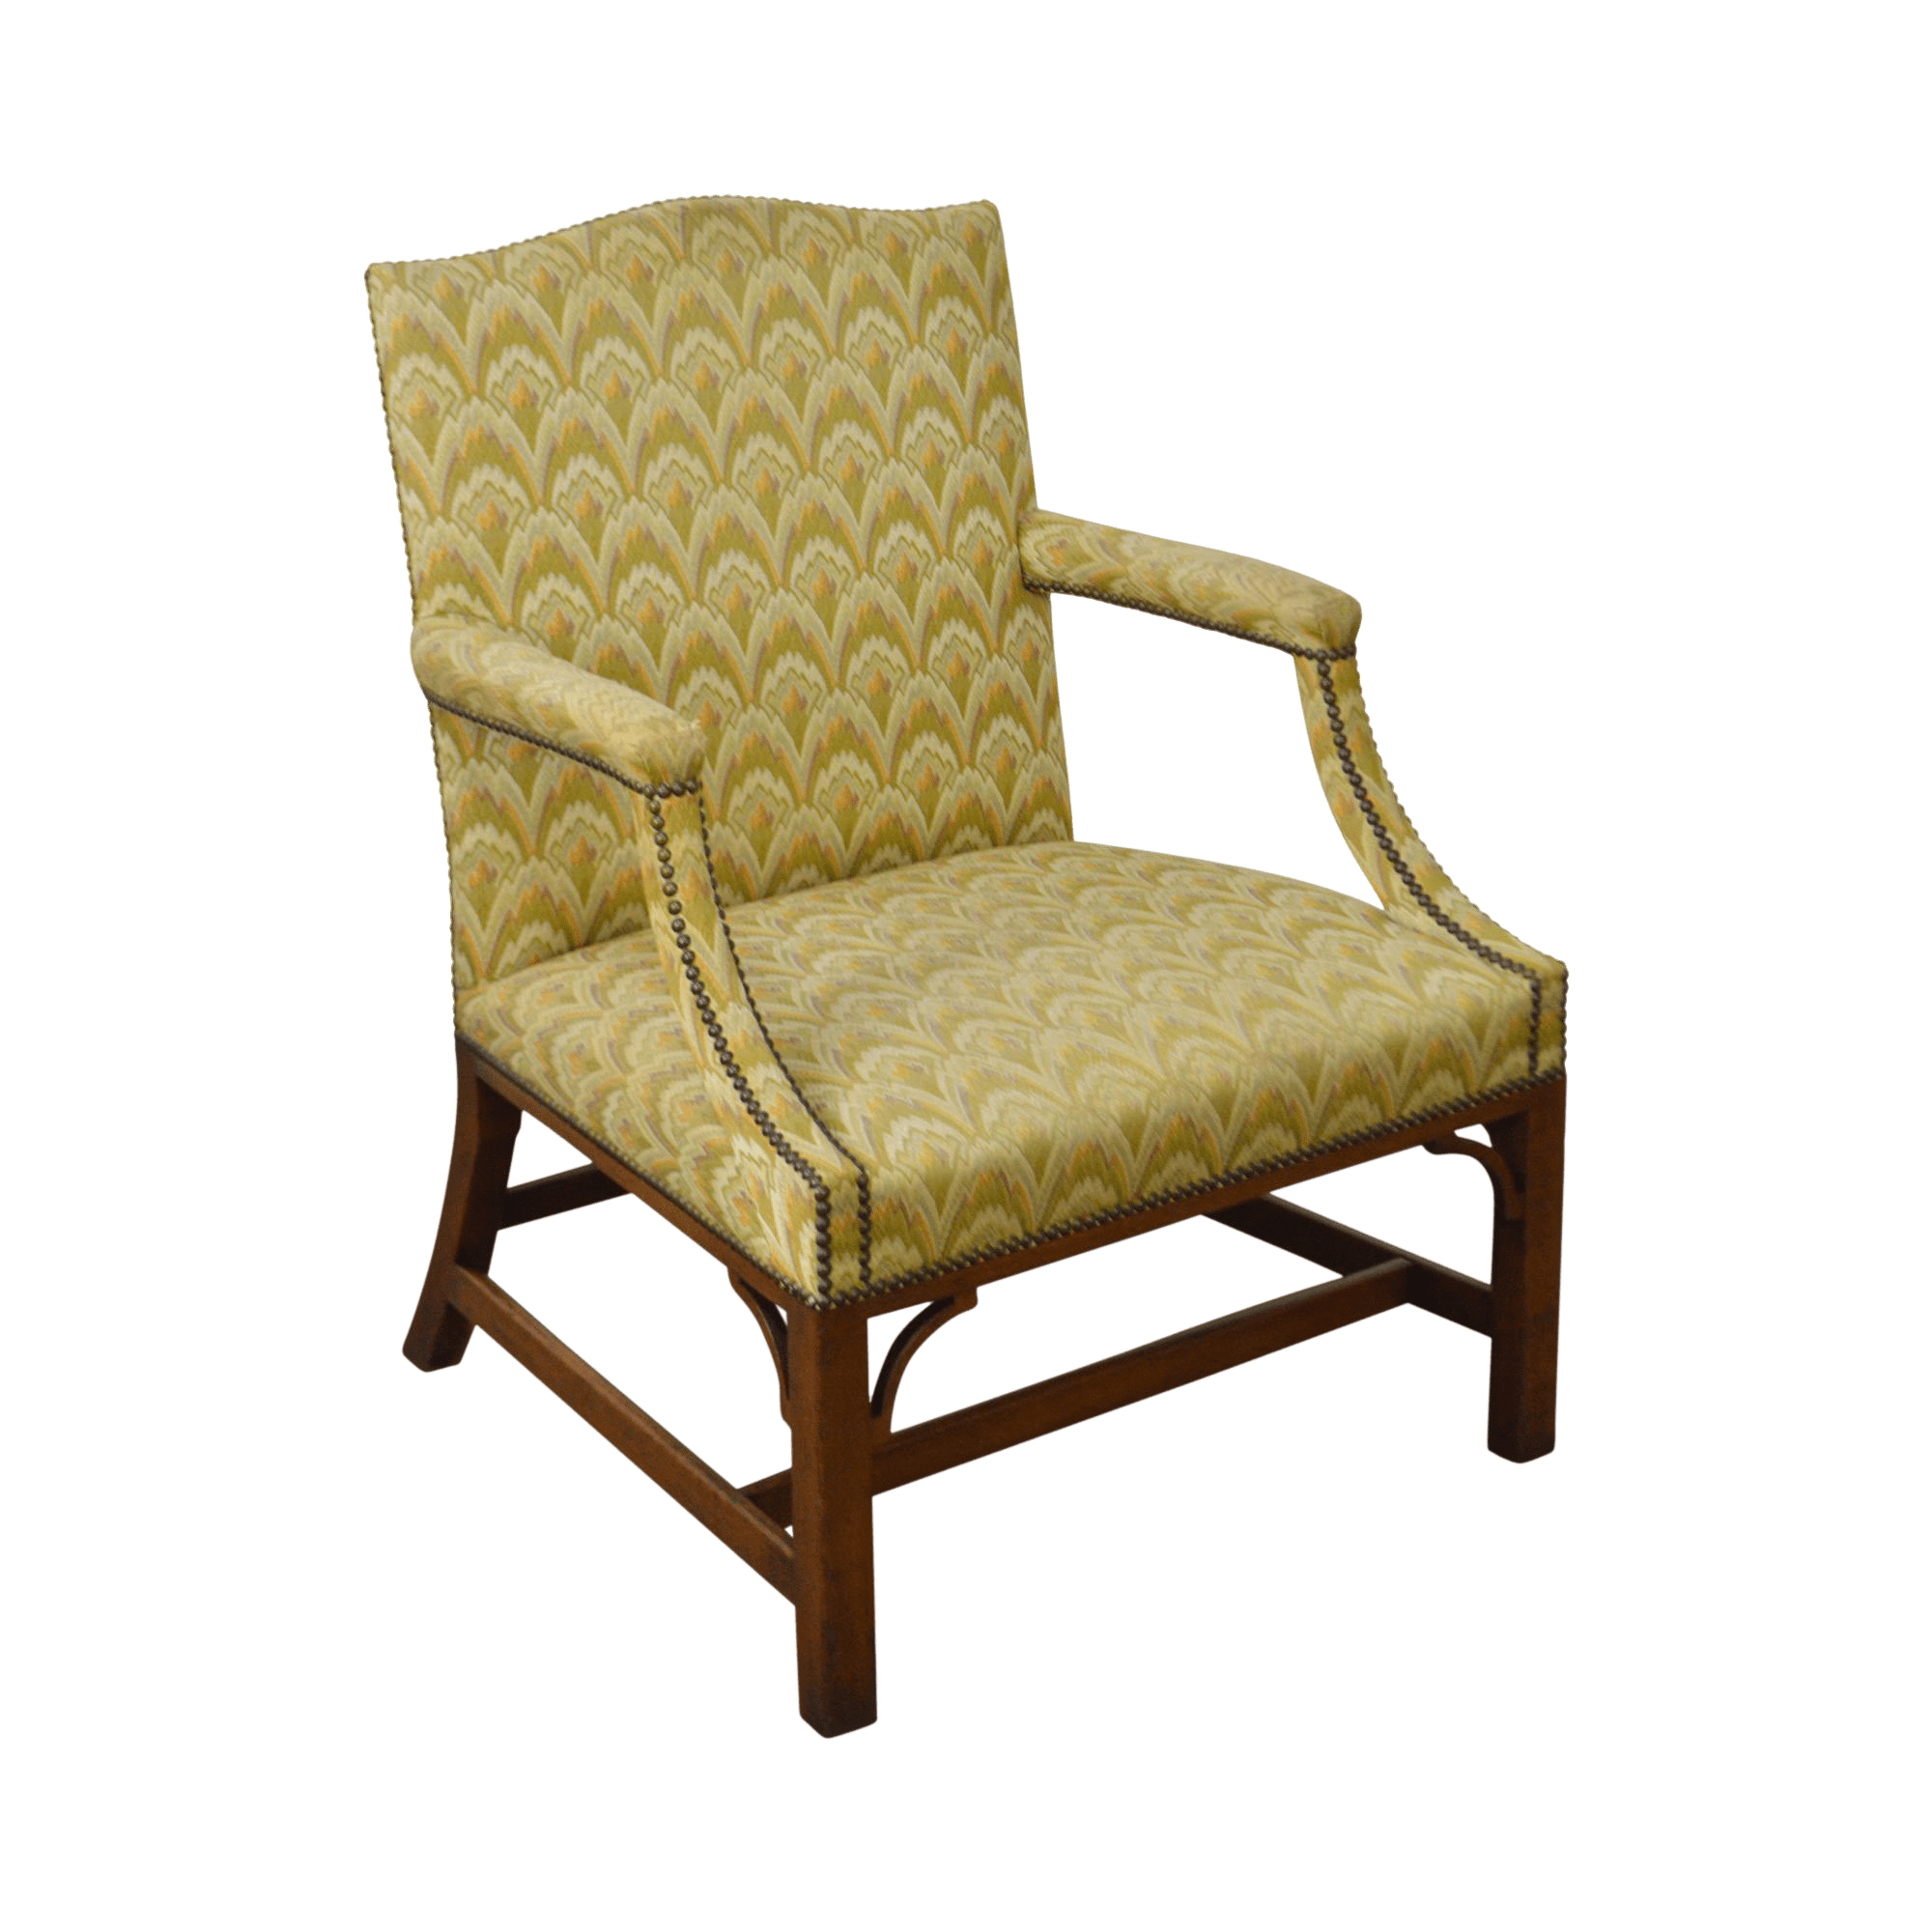 chippendale rocking chair how to make a bean bag out of old clothes kittinger colonial williamsburg george ii